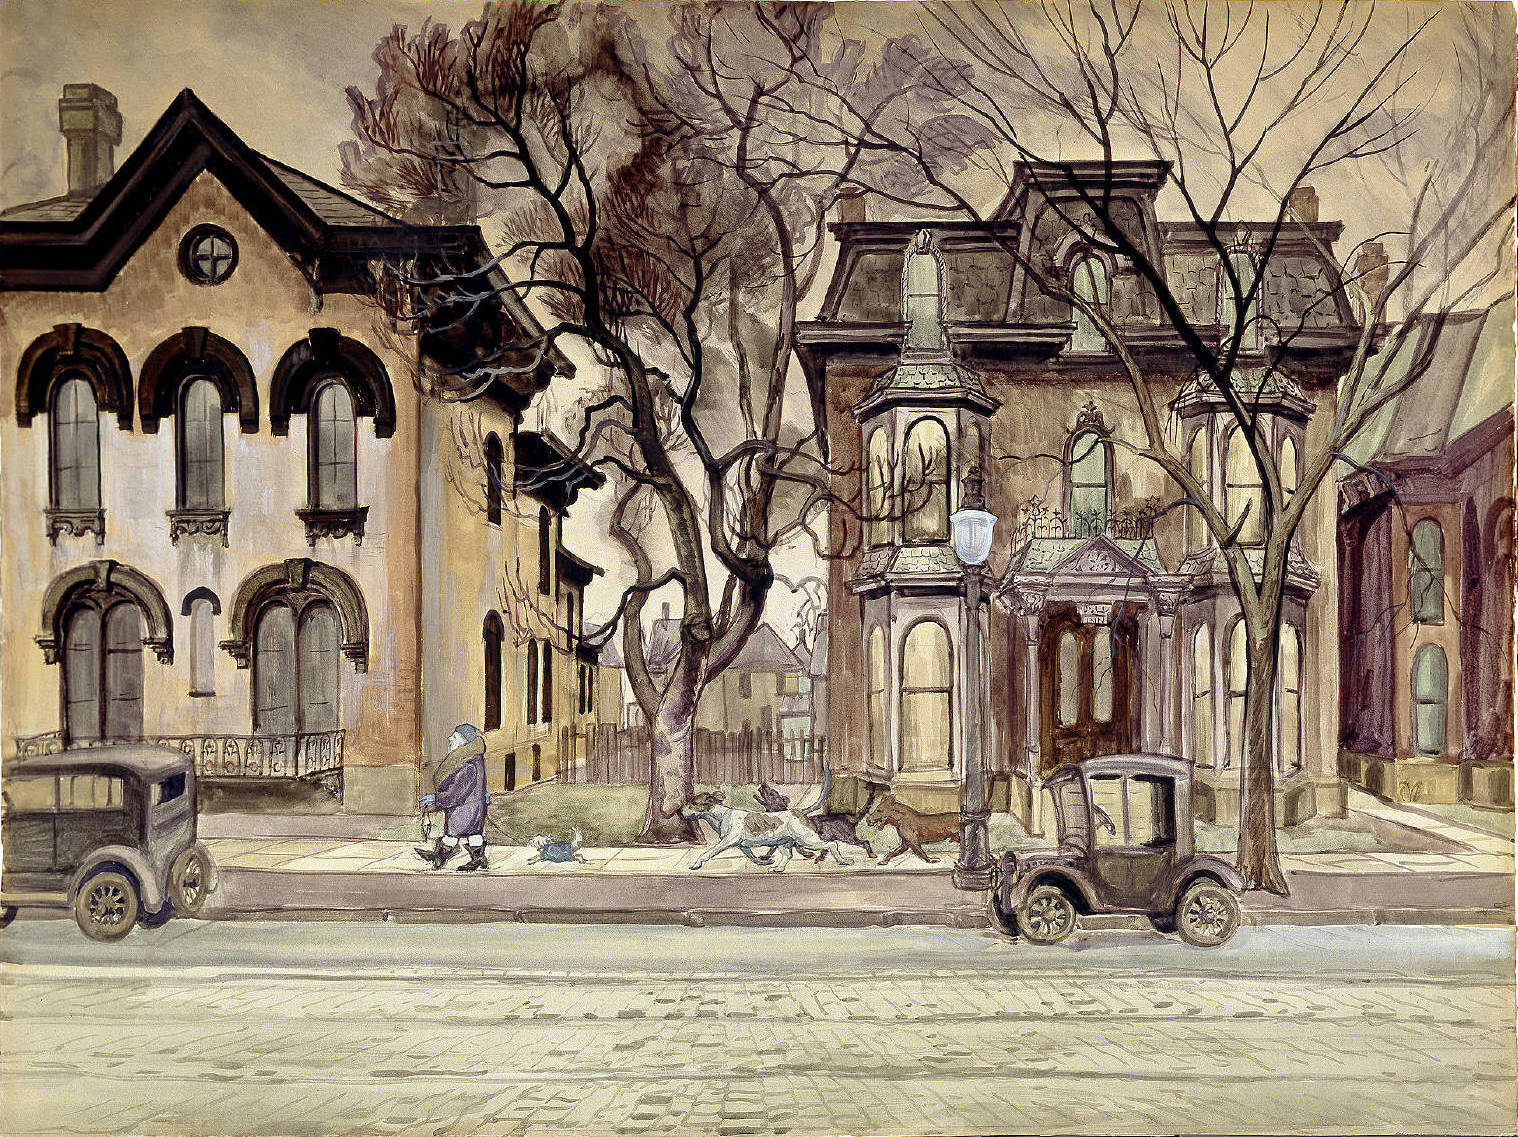 The Promenade, Charles Burchfield. (Charles E. Burchfield Archives)